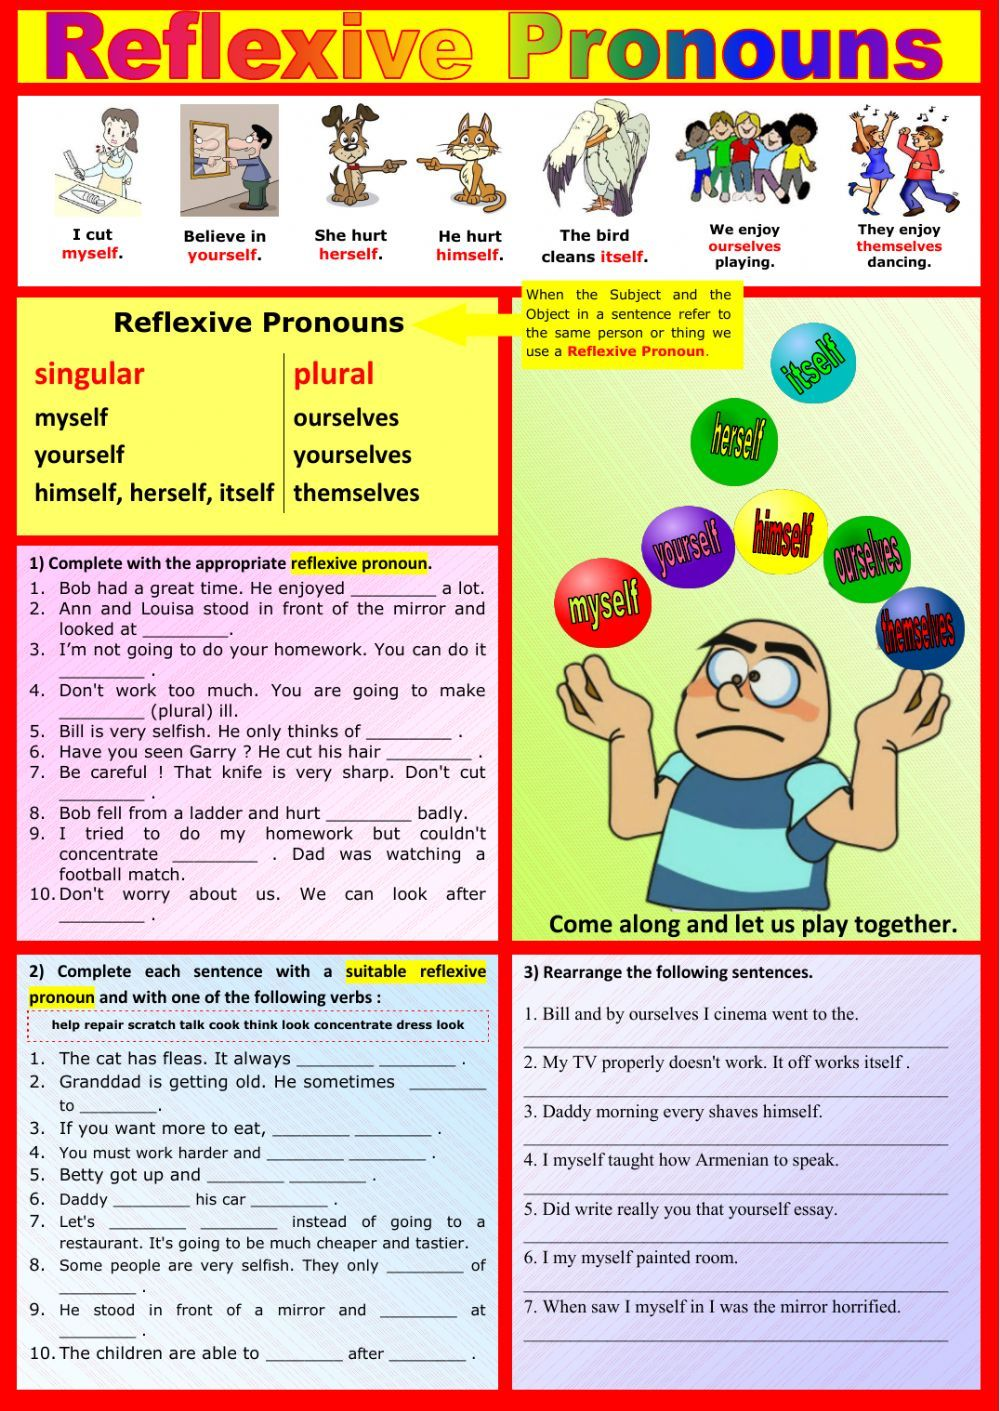 Reflexive Pronouns interactive and downloadable worksheet